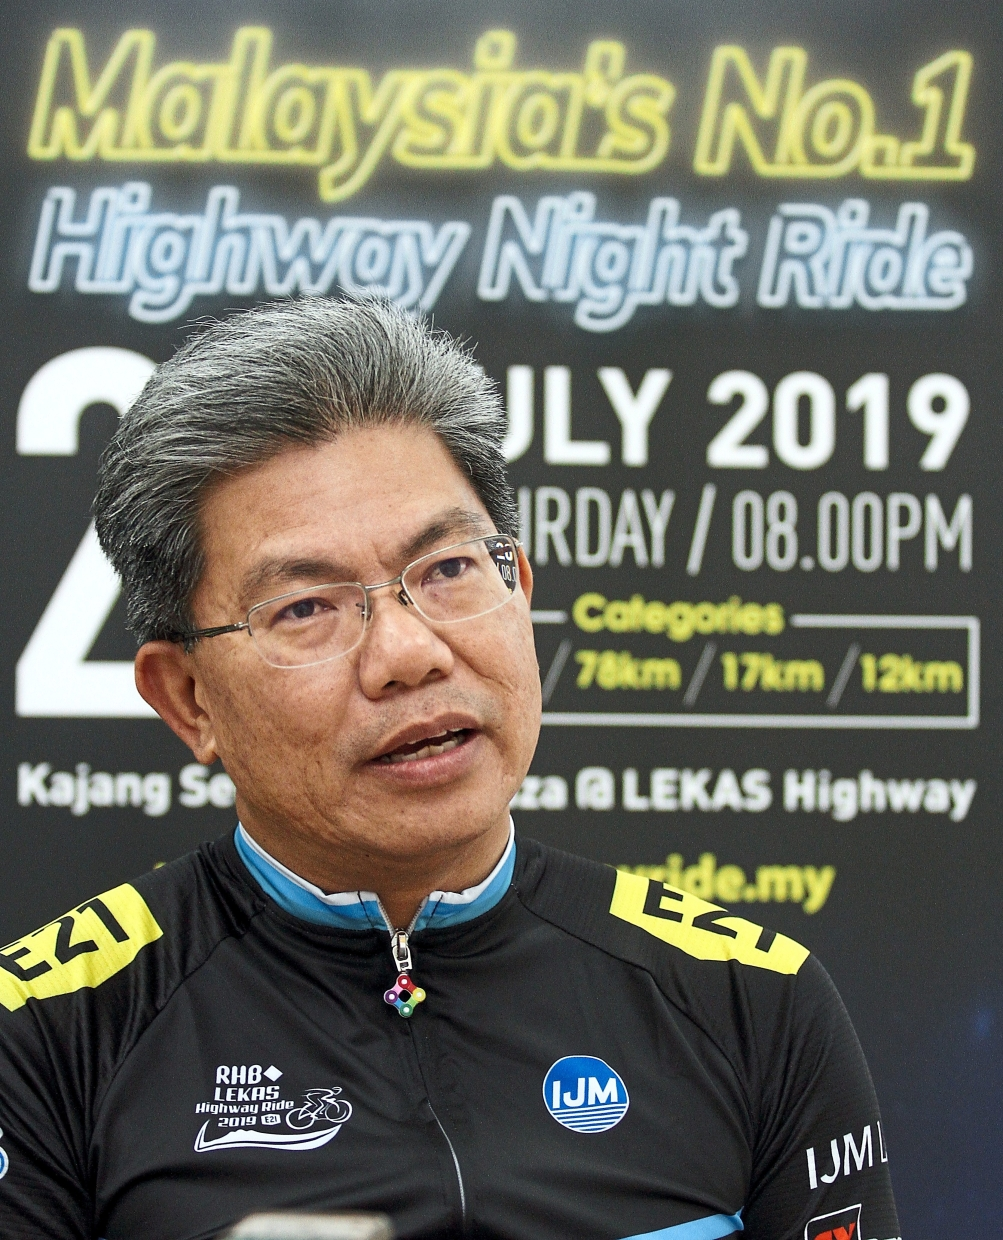 Khairussaleh says cycling is gaining popularity.